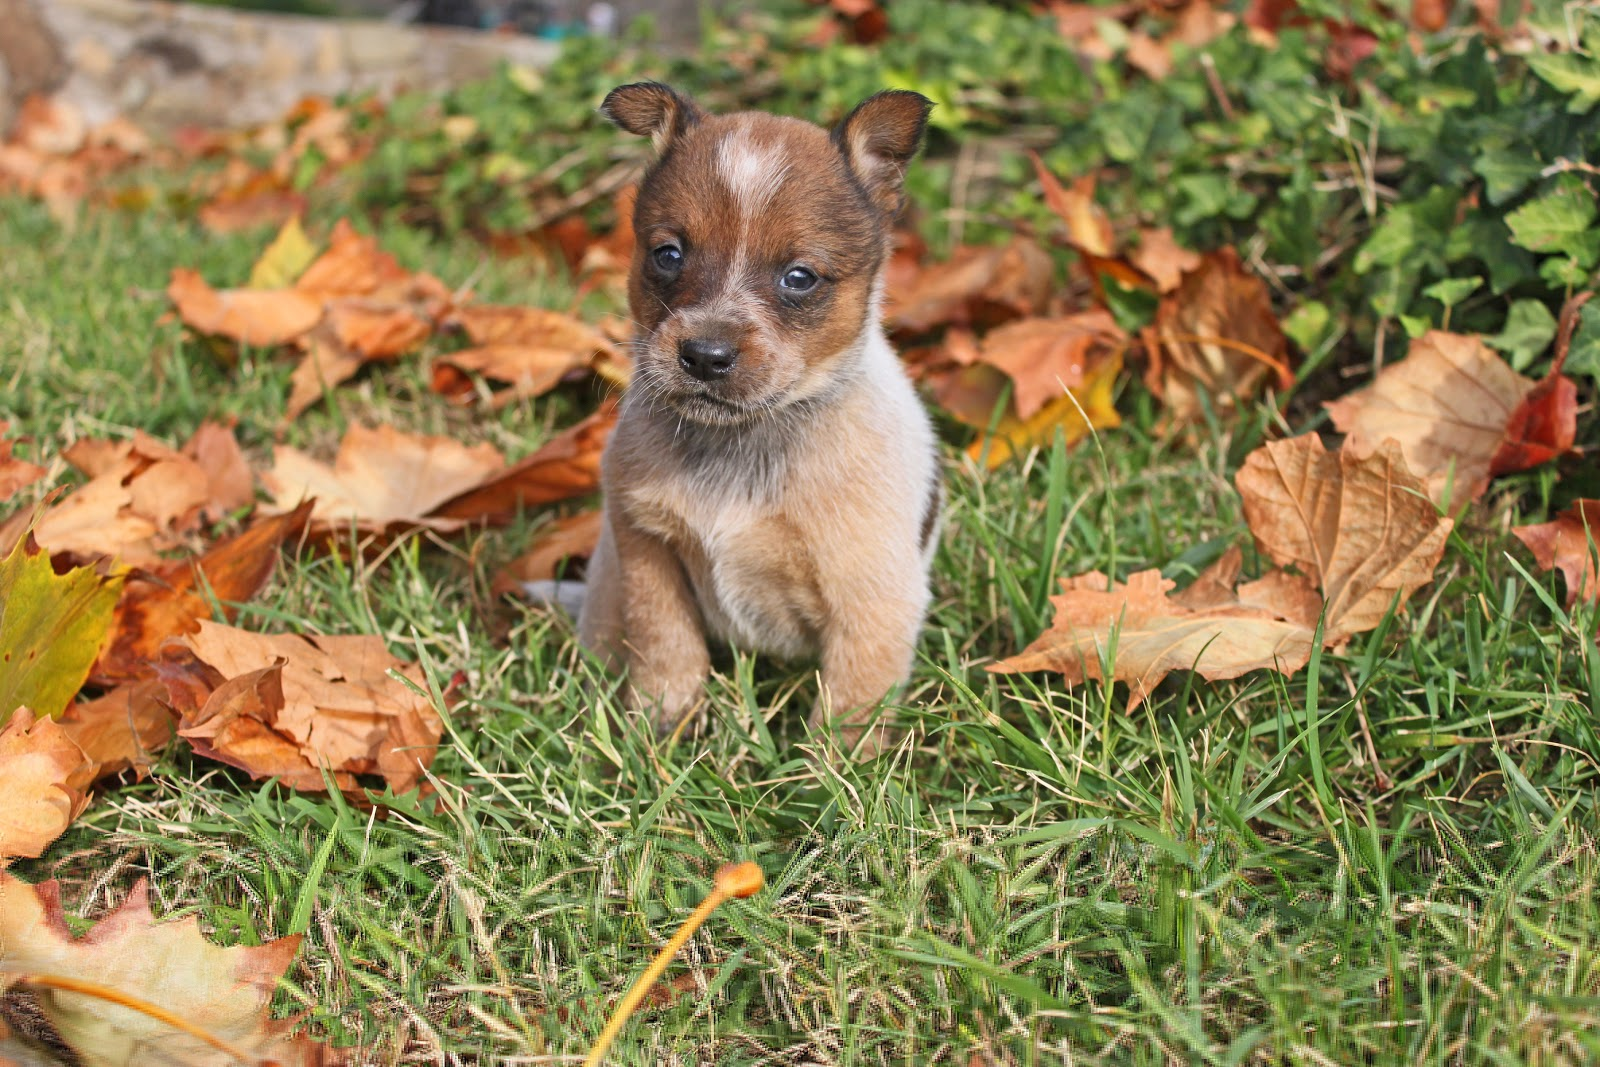 Queensland Heeler Puppy Dogs For Sale in Ventura County, Southern ...